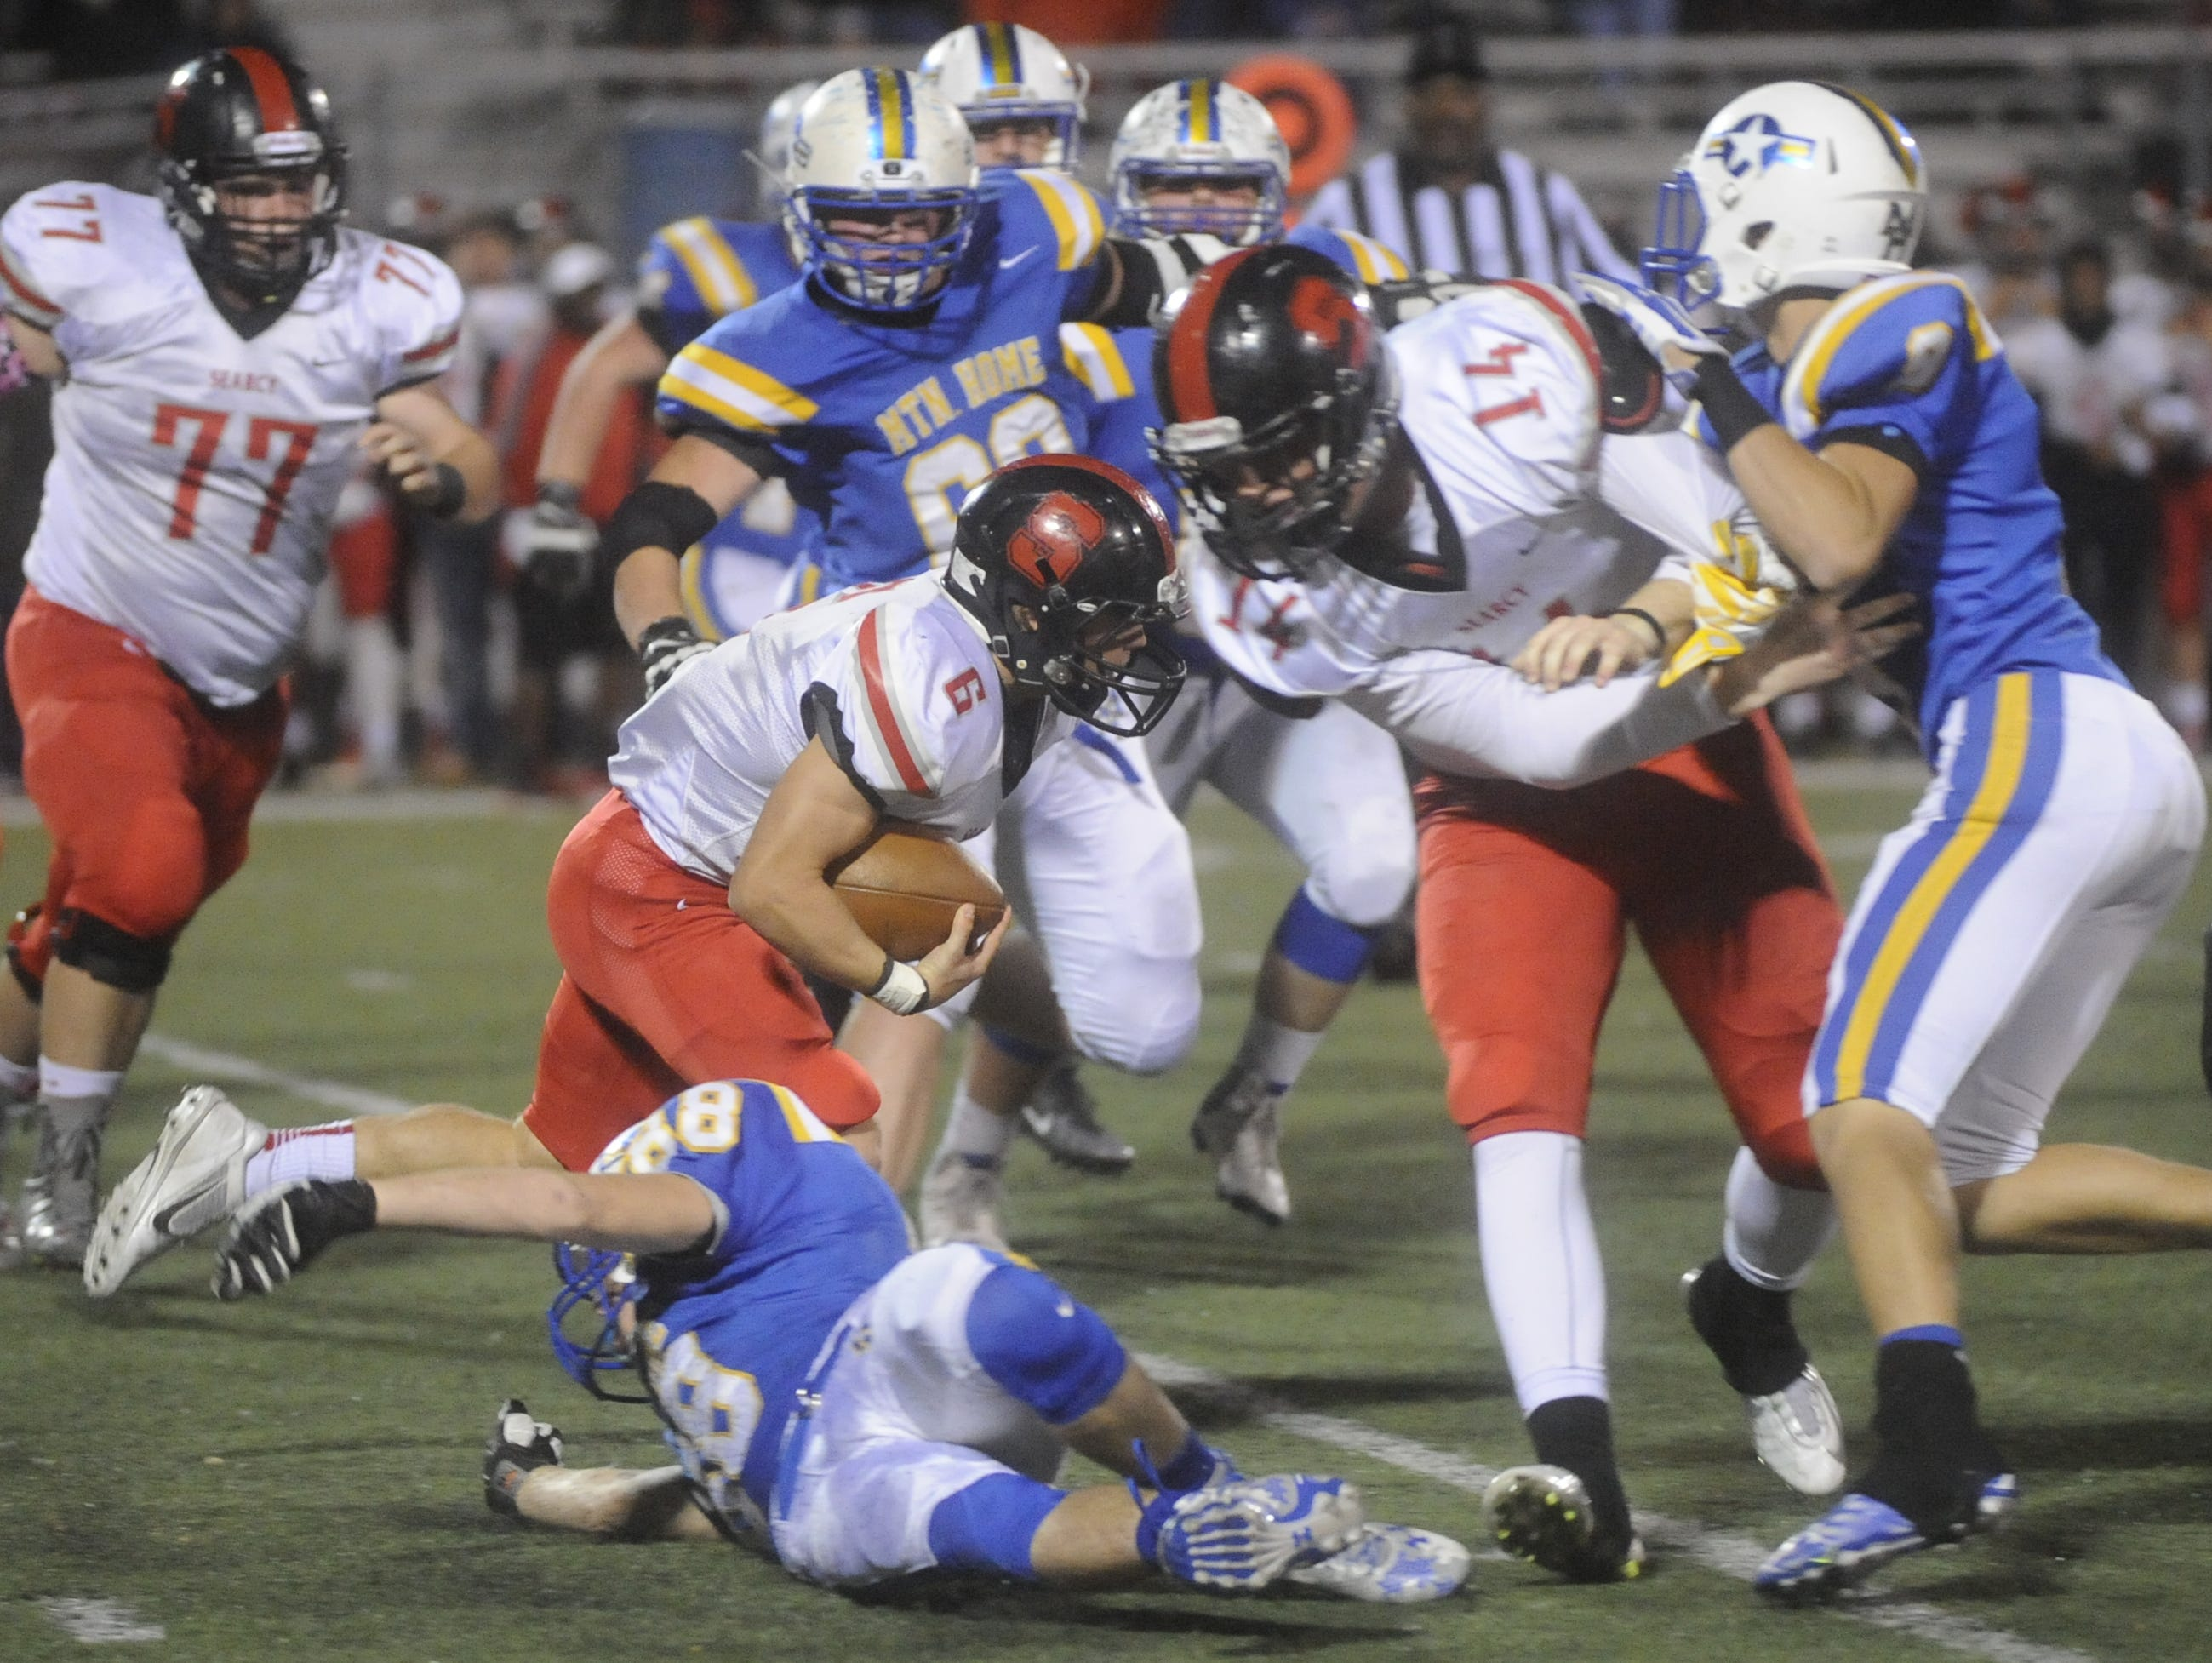 Searcy's Luke Dixon carries for a big gain during the Lions' 61-26 win over Mountain Home on Friday night.